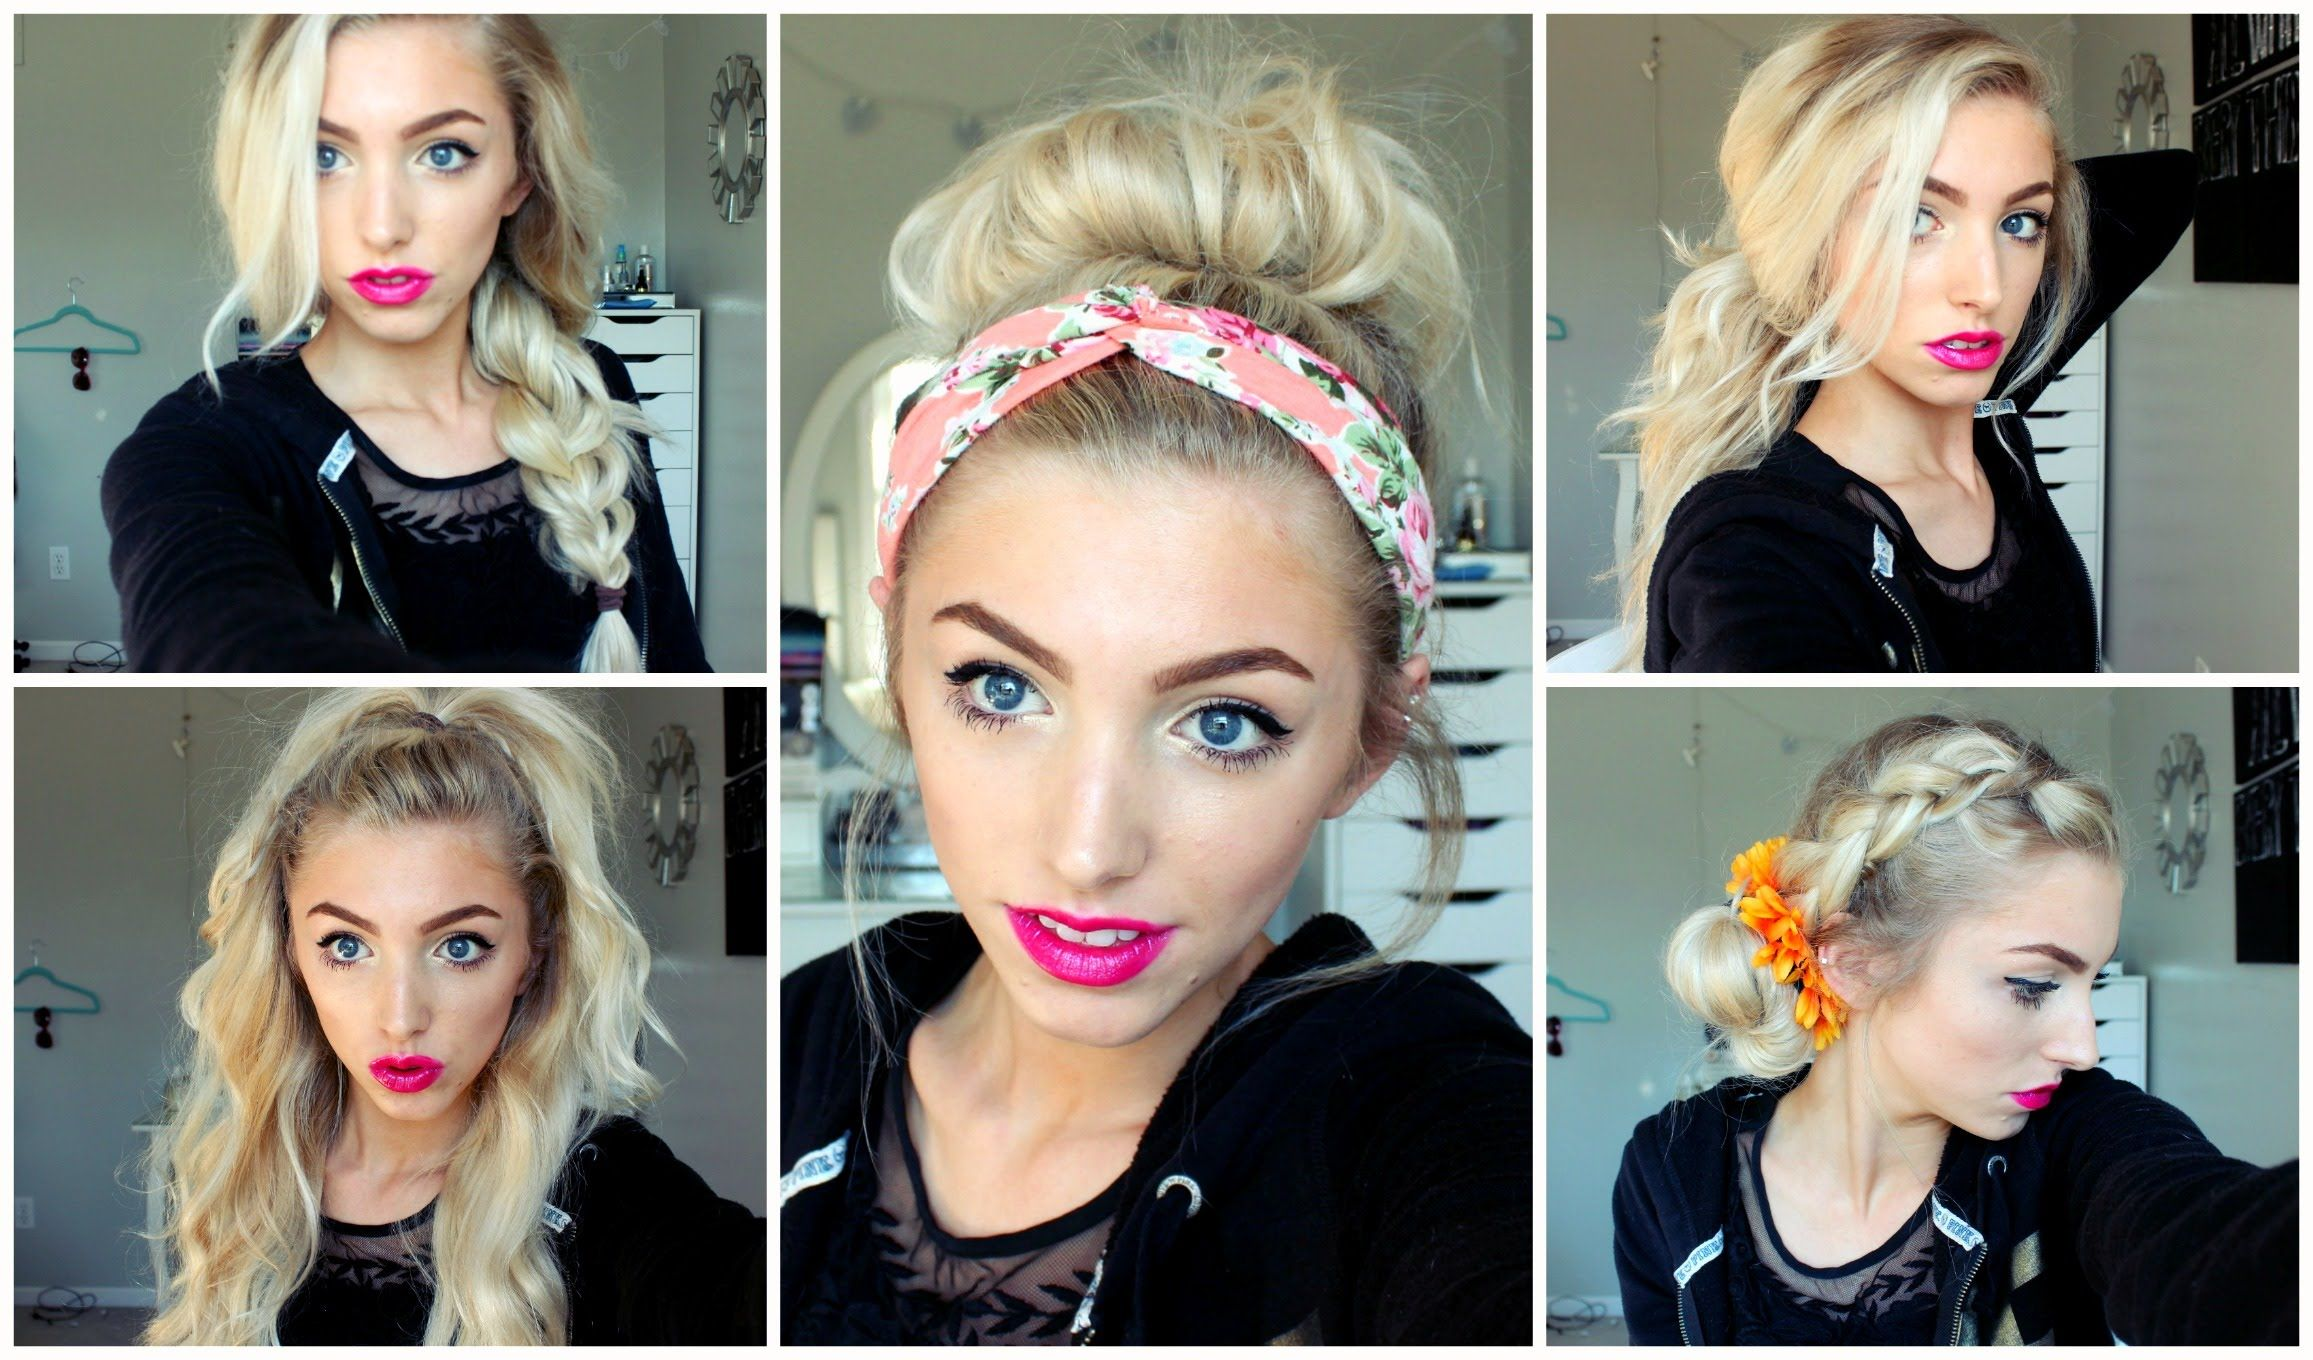 Summer Hairstyles 3 Easy Summer Hairstyles  Fashion  Pinterest  Summer And Fashion